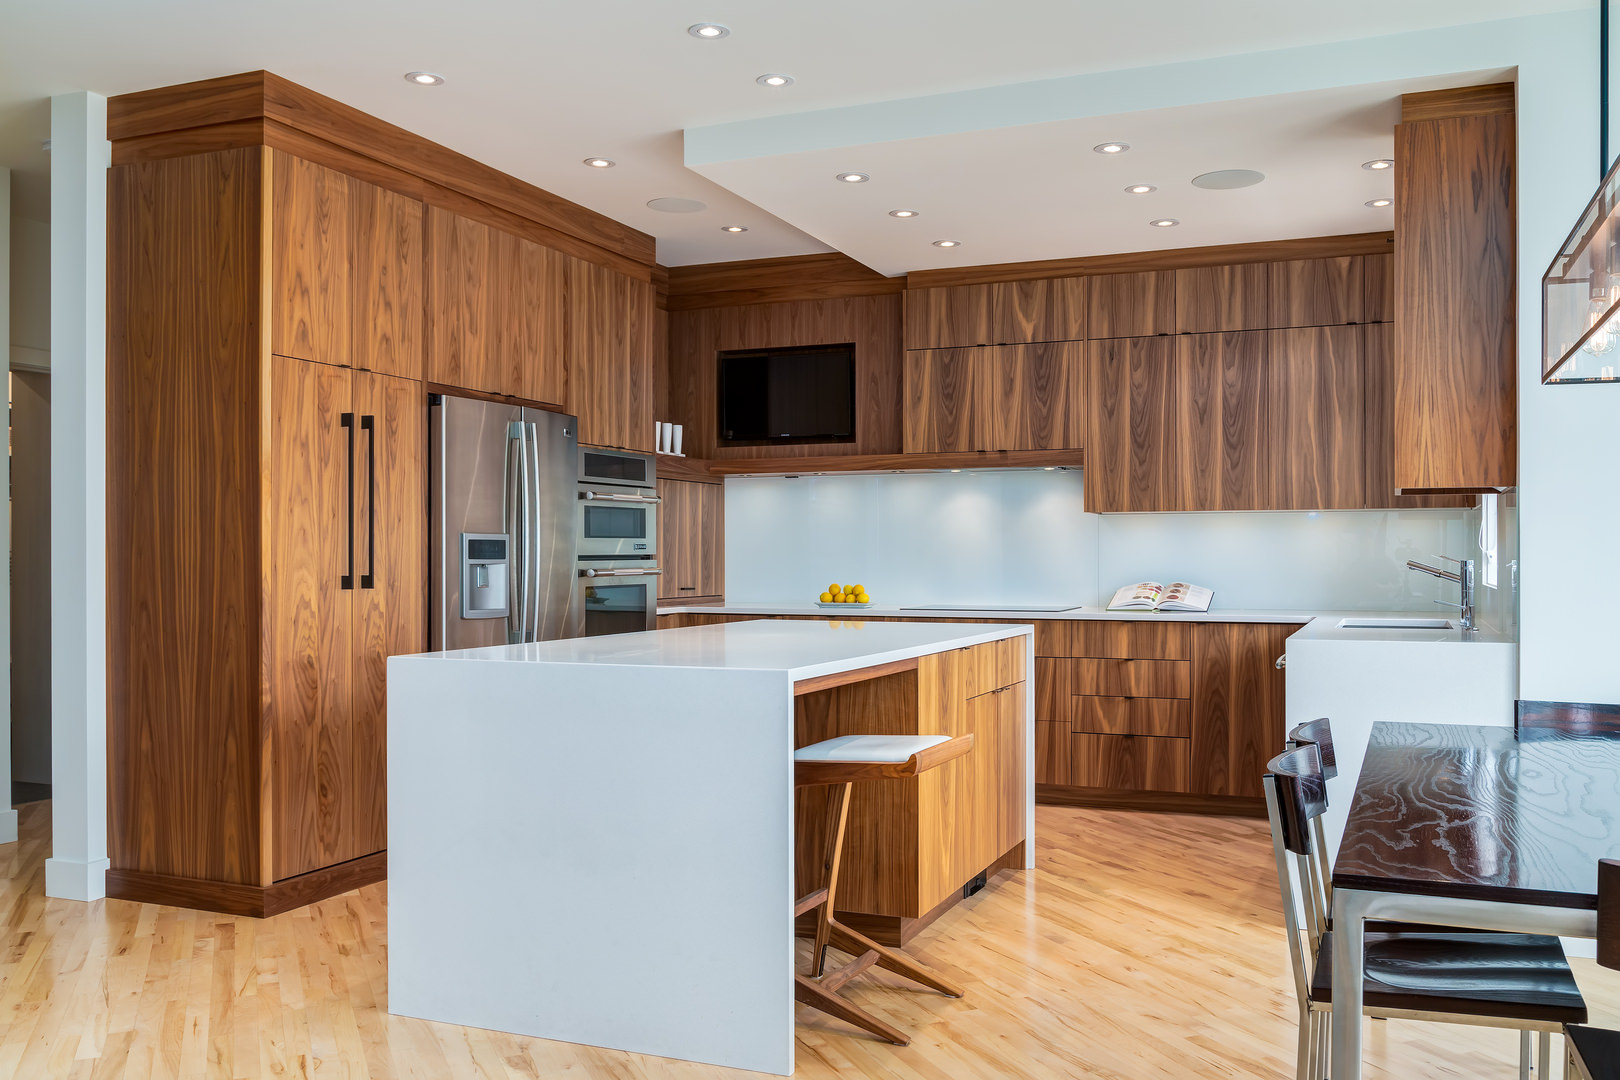 Focus all of your attention towards the marble kitchen counter or the ceiling light.